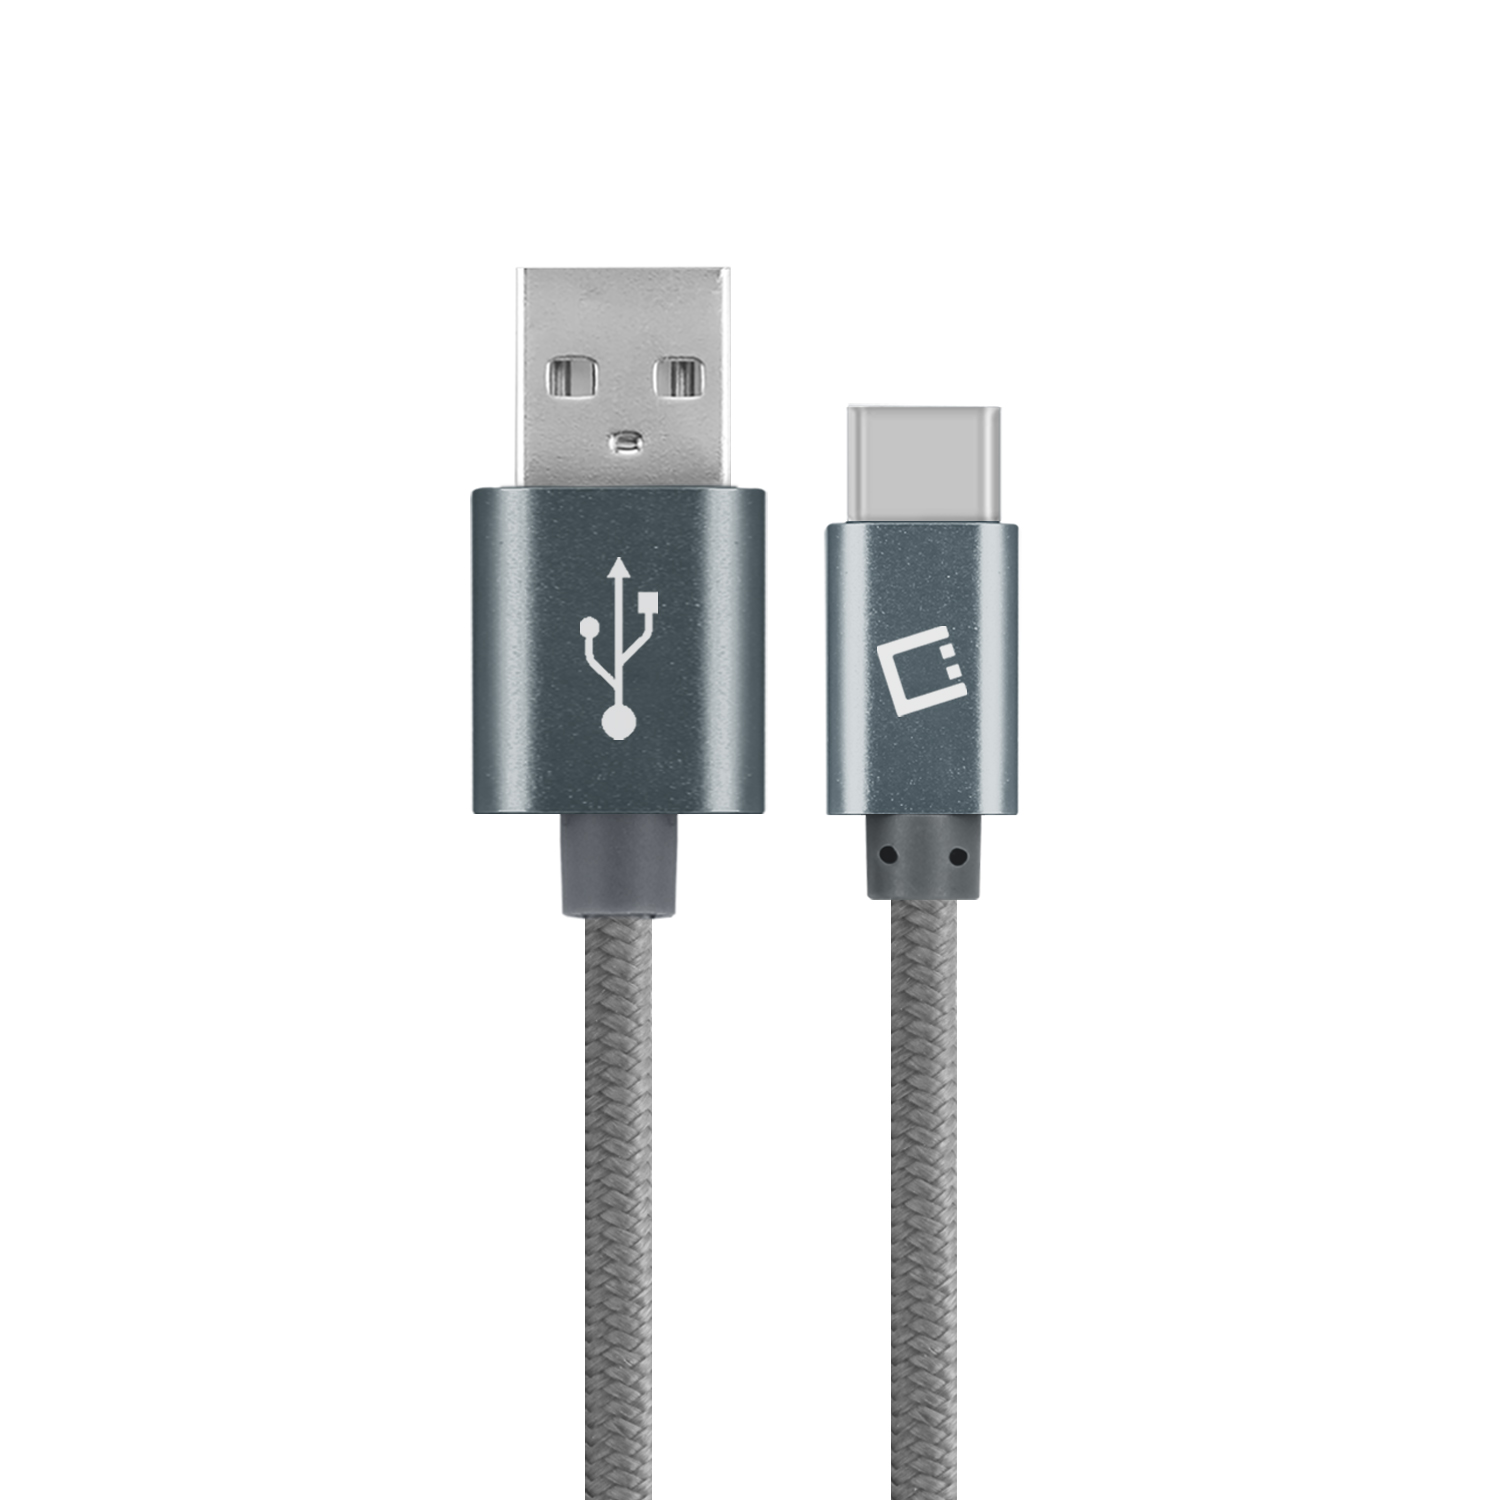 ZTE Axon M USB Type-C To Type-A Braided Data Power Cable Grey 6ft Braided